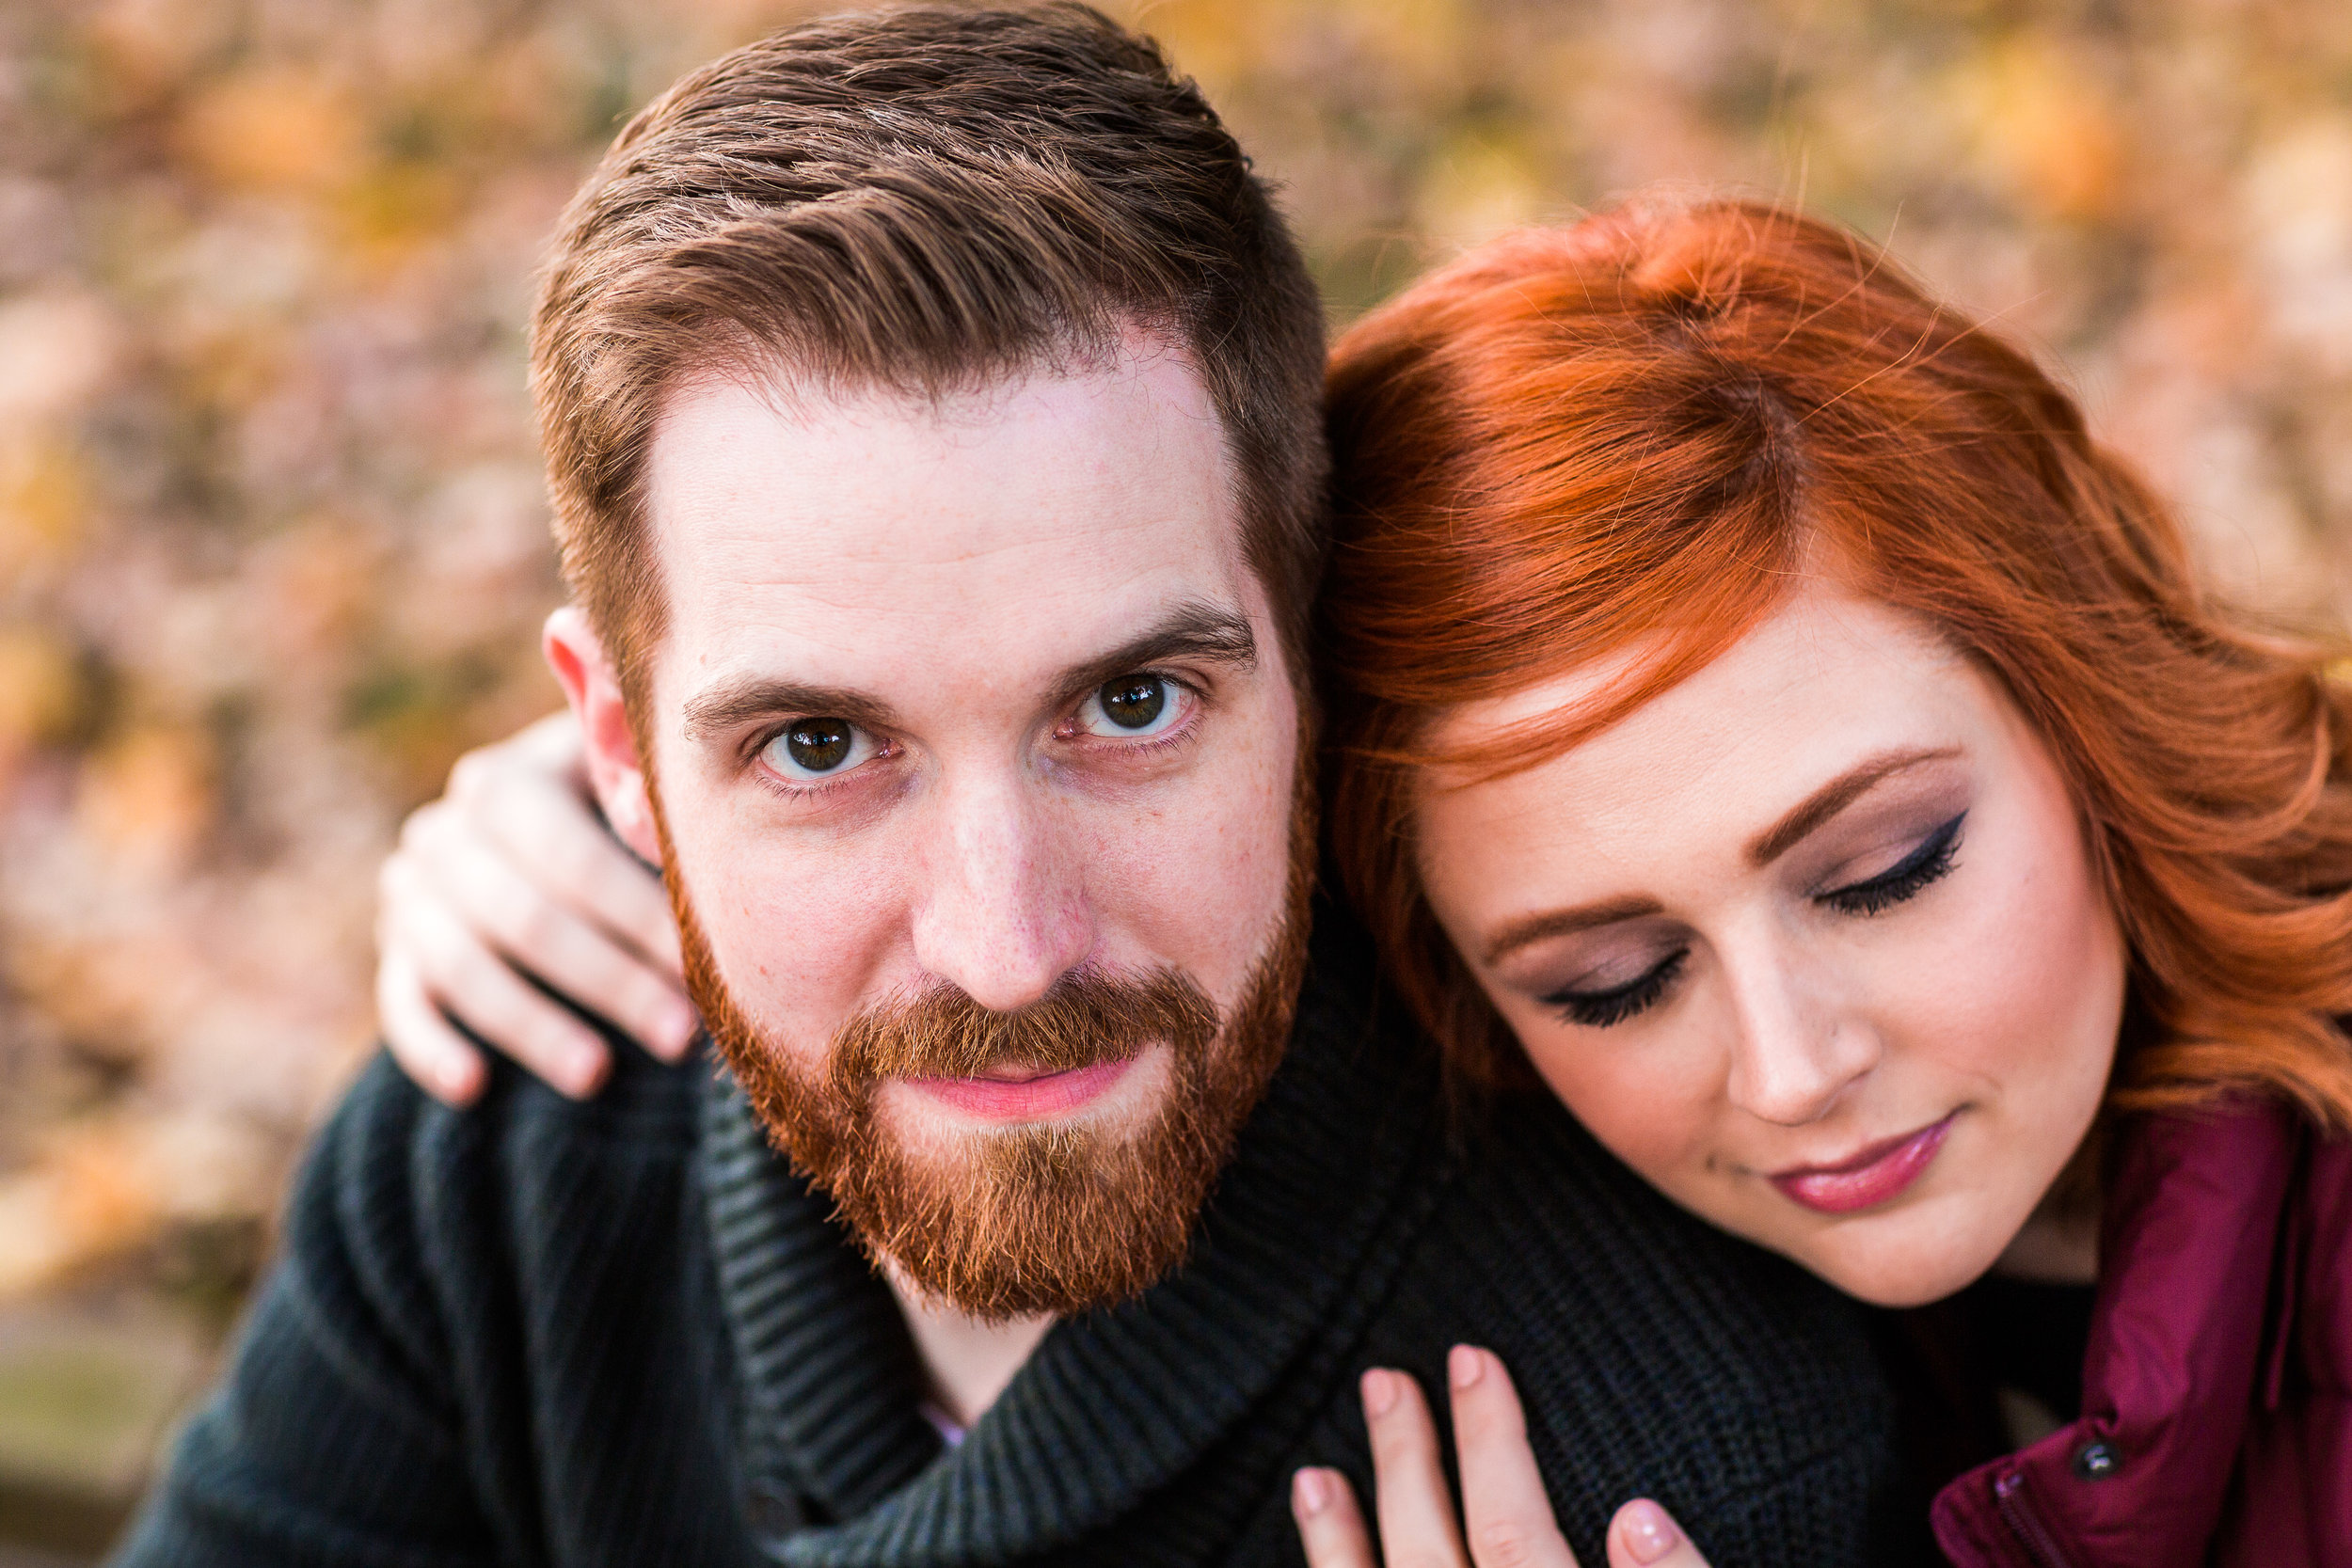 wedding-photographers-in-st-louis-greg-and-shannon-engagement-at-Anheuser-Busch-32.jpg